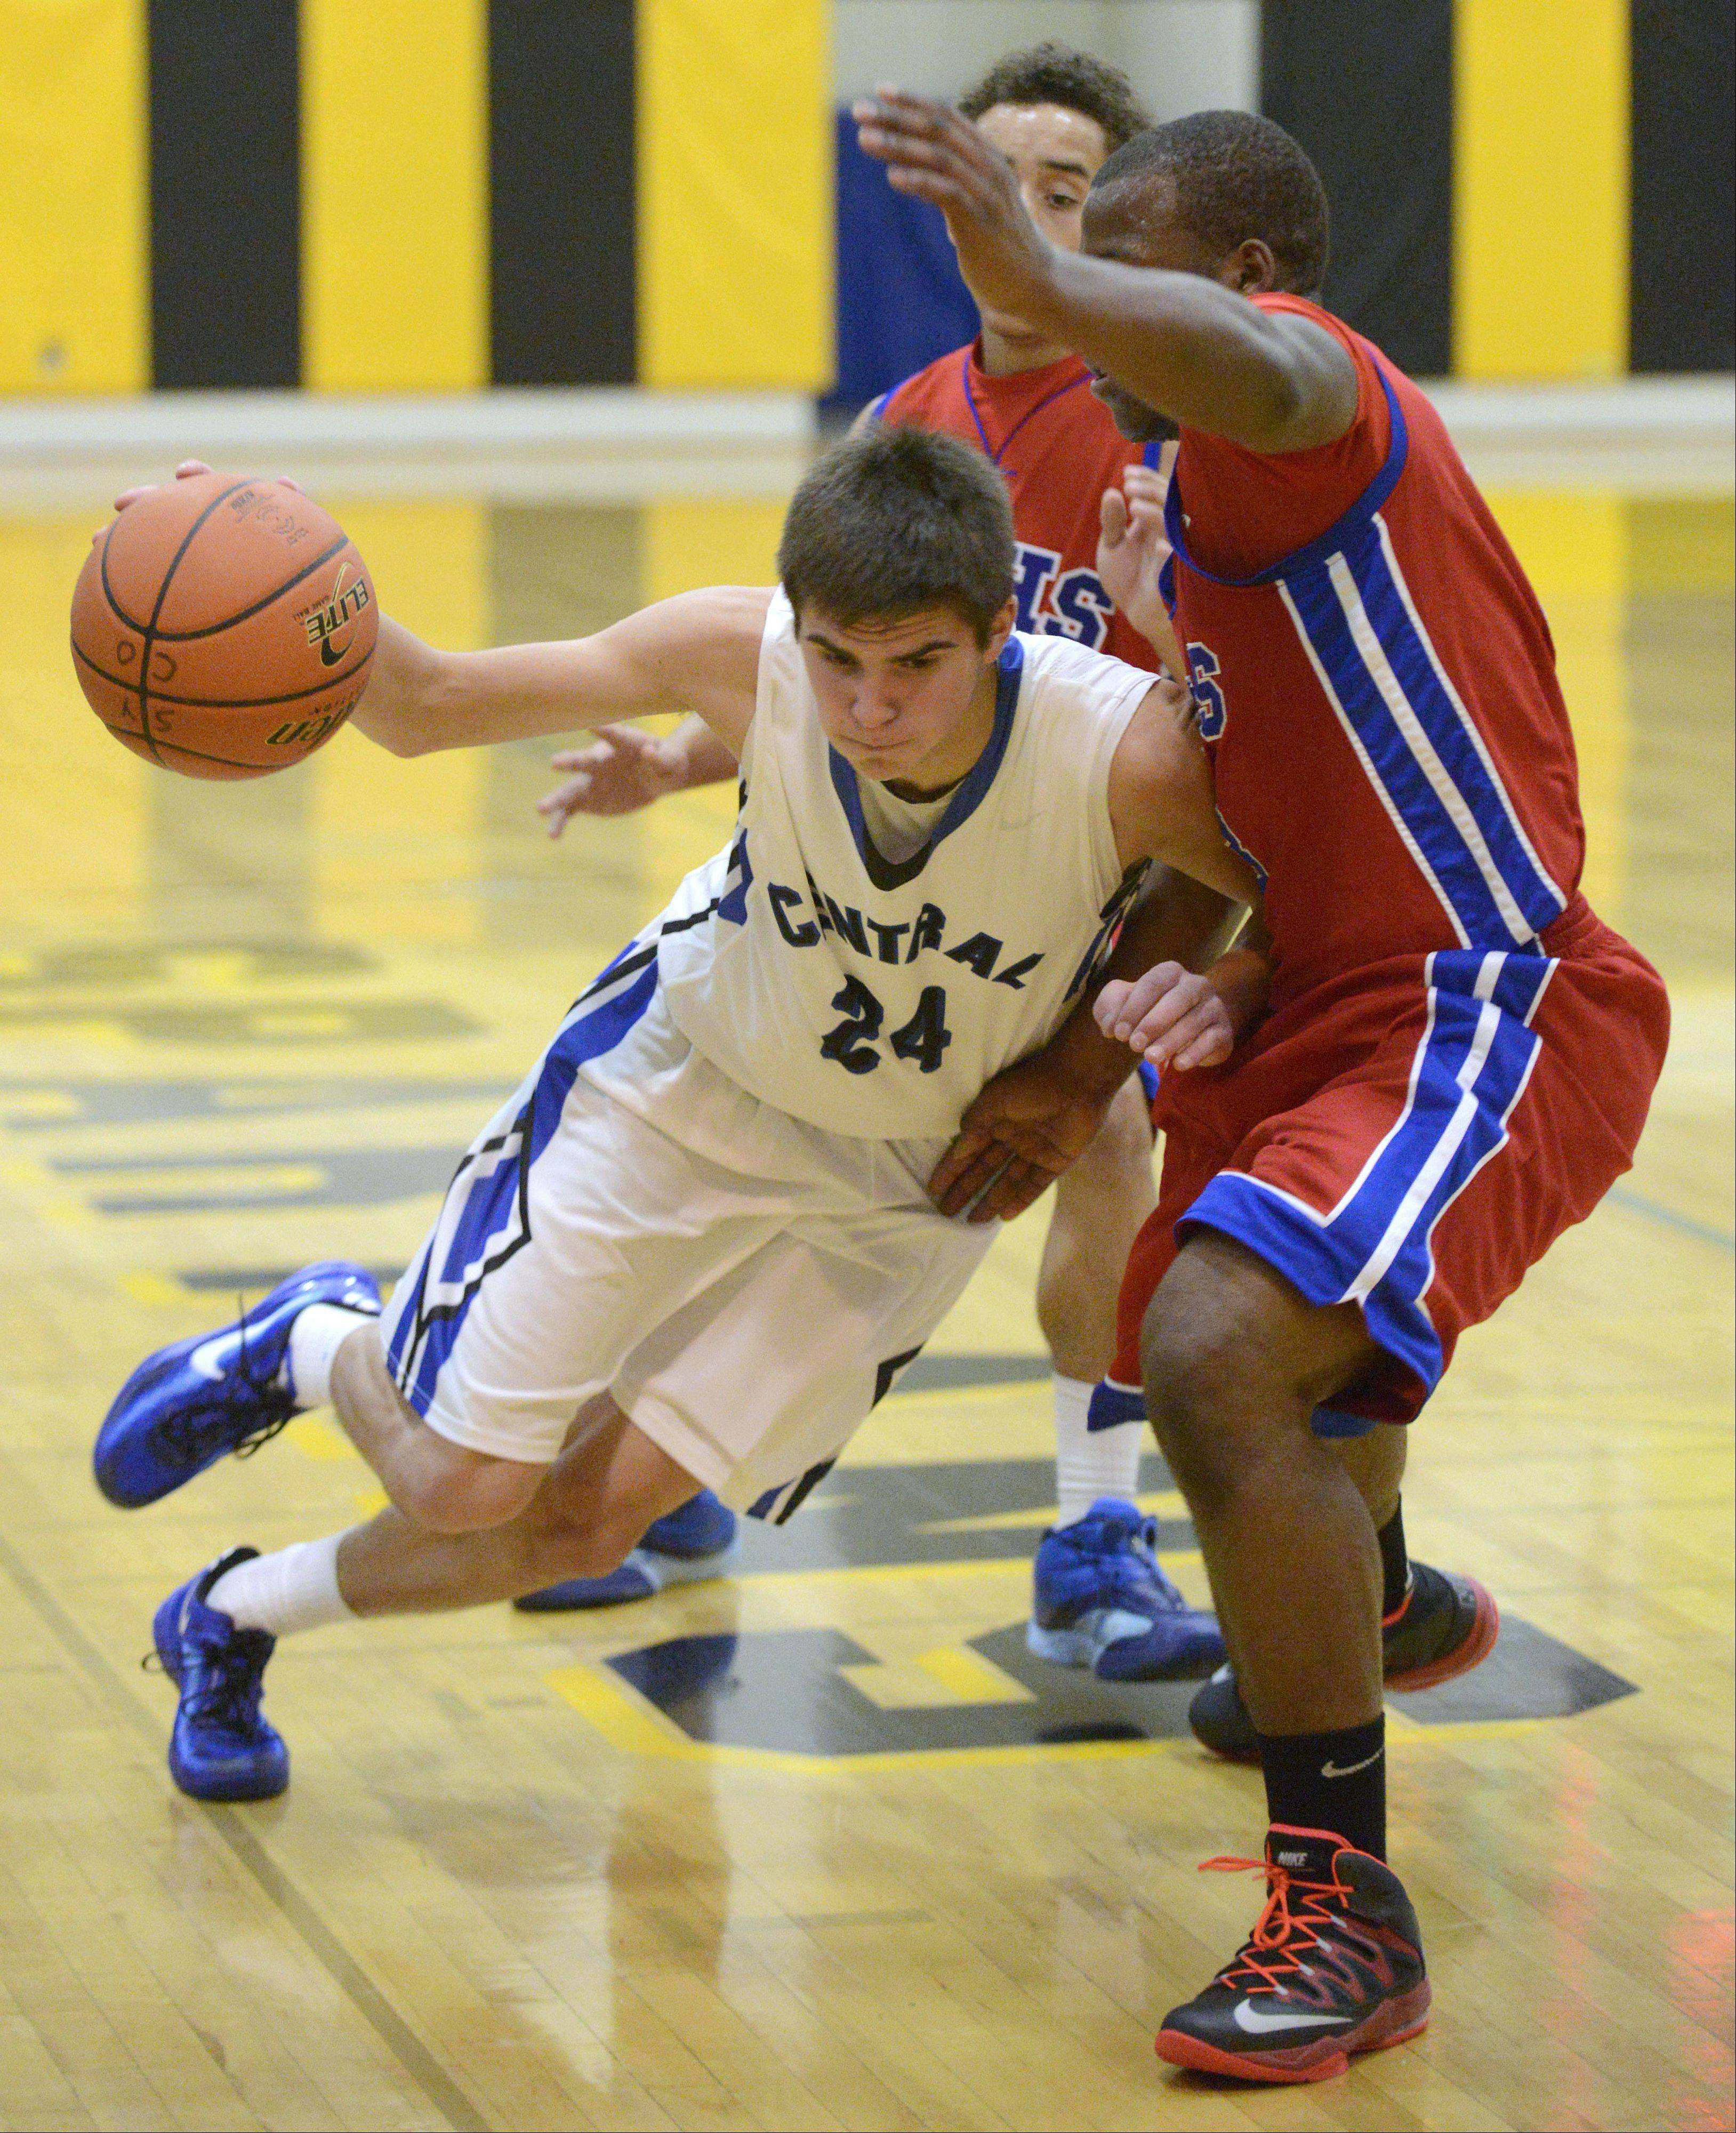 Burlington Central's Brett Rau forces his way to the hoop around Dundee-Crown's Cordero Parson in the first quarter on Tuesday, November 26.